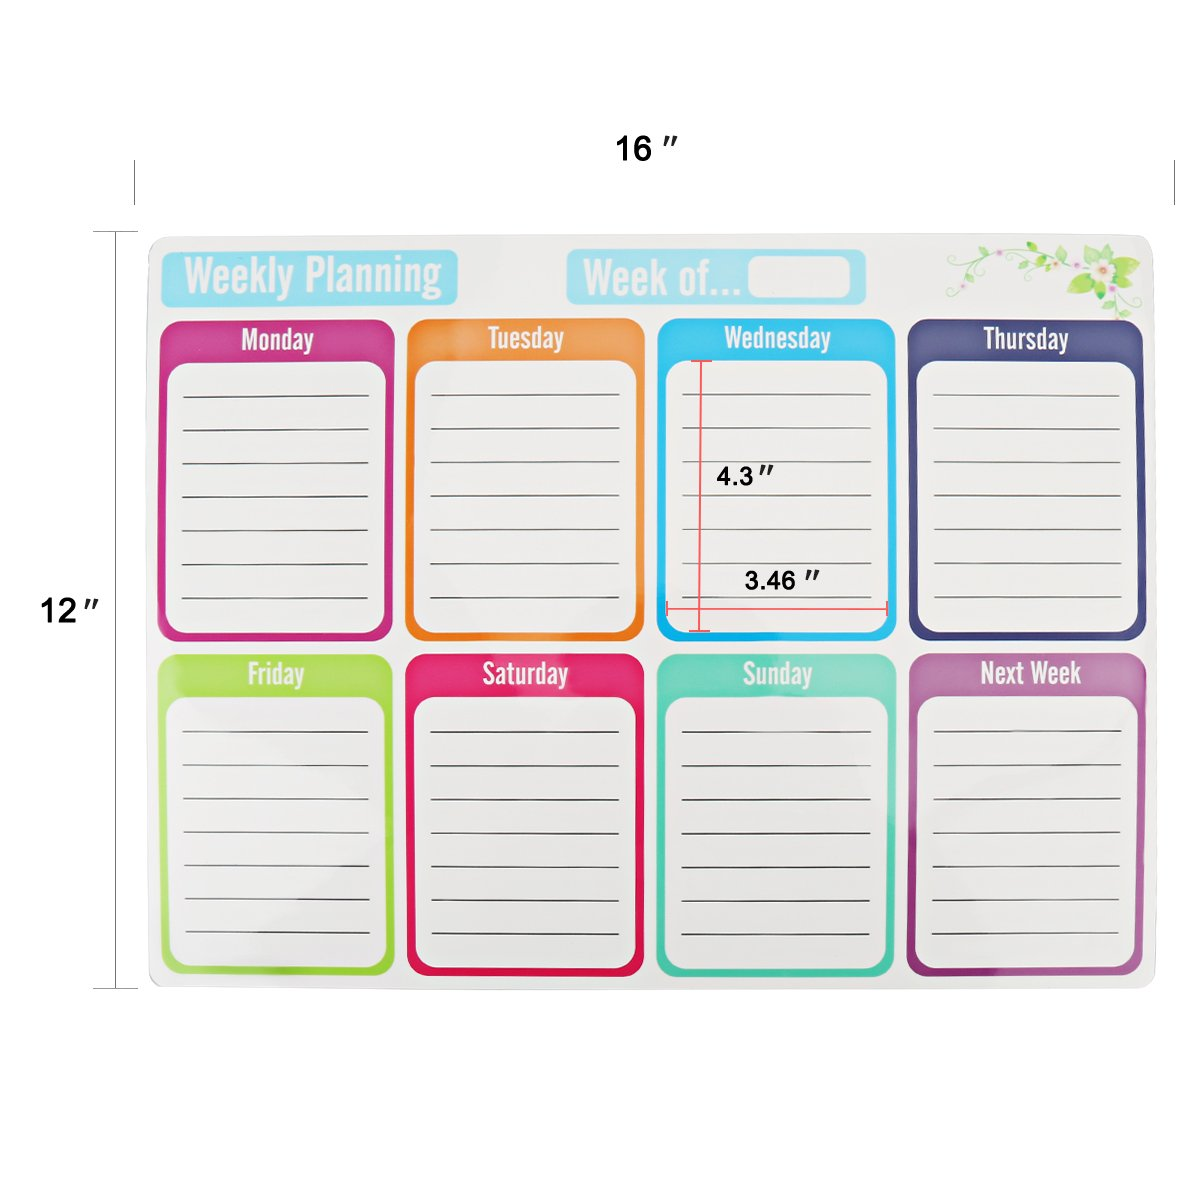 Bieco Magnetic Dry Erase Whiteboard Sheet for Kitchen Fridge,Includes 3 Magnetic Markers 1 Eraser with Magnets,Refrigerator White Board Shopping ...